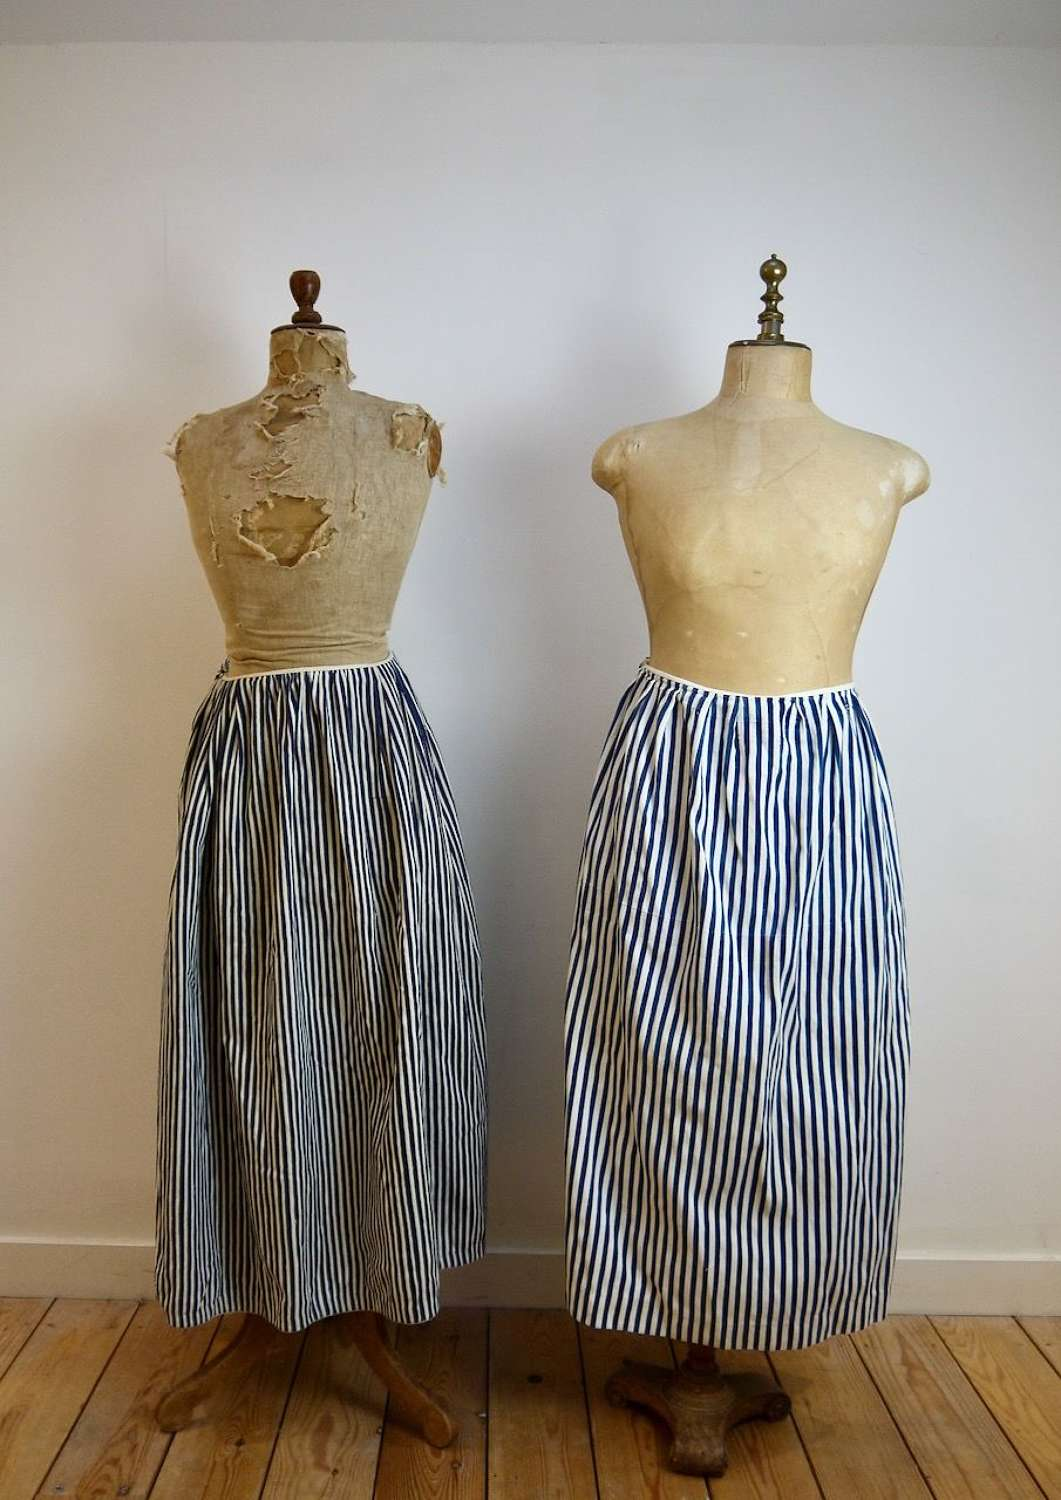 Blue & White Striped Cotton Jupons French 19th Century